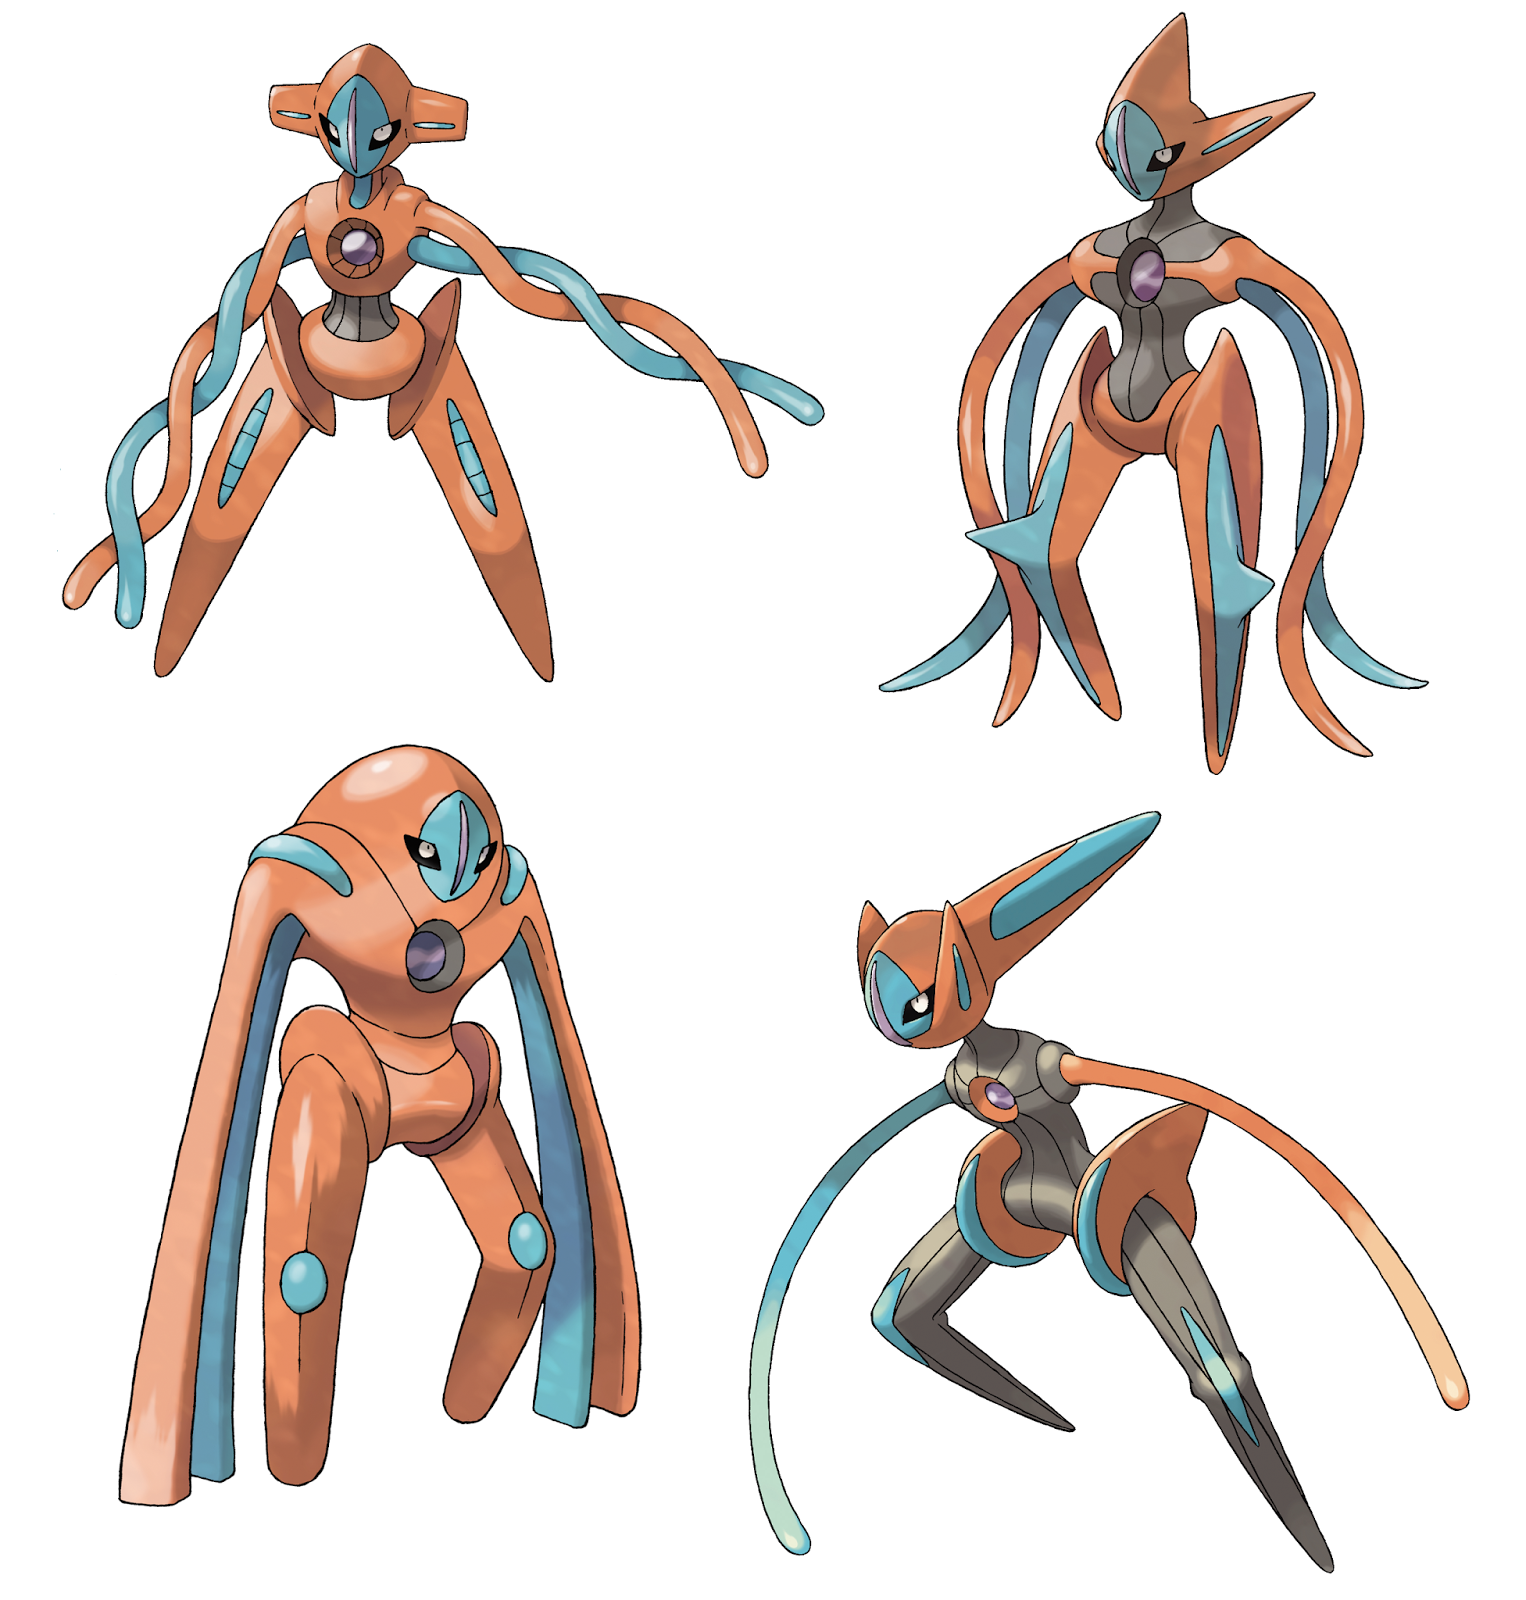 Pokémon by Review: #386: Deoxys